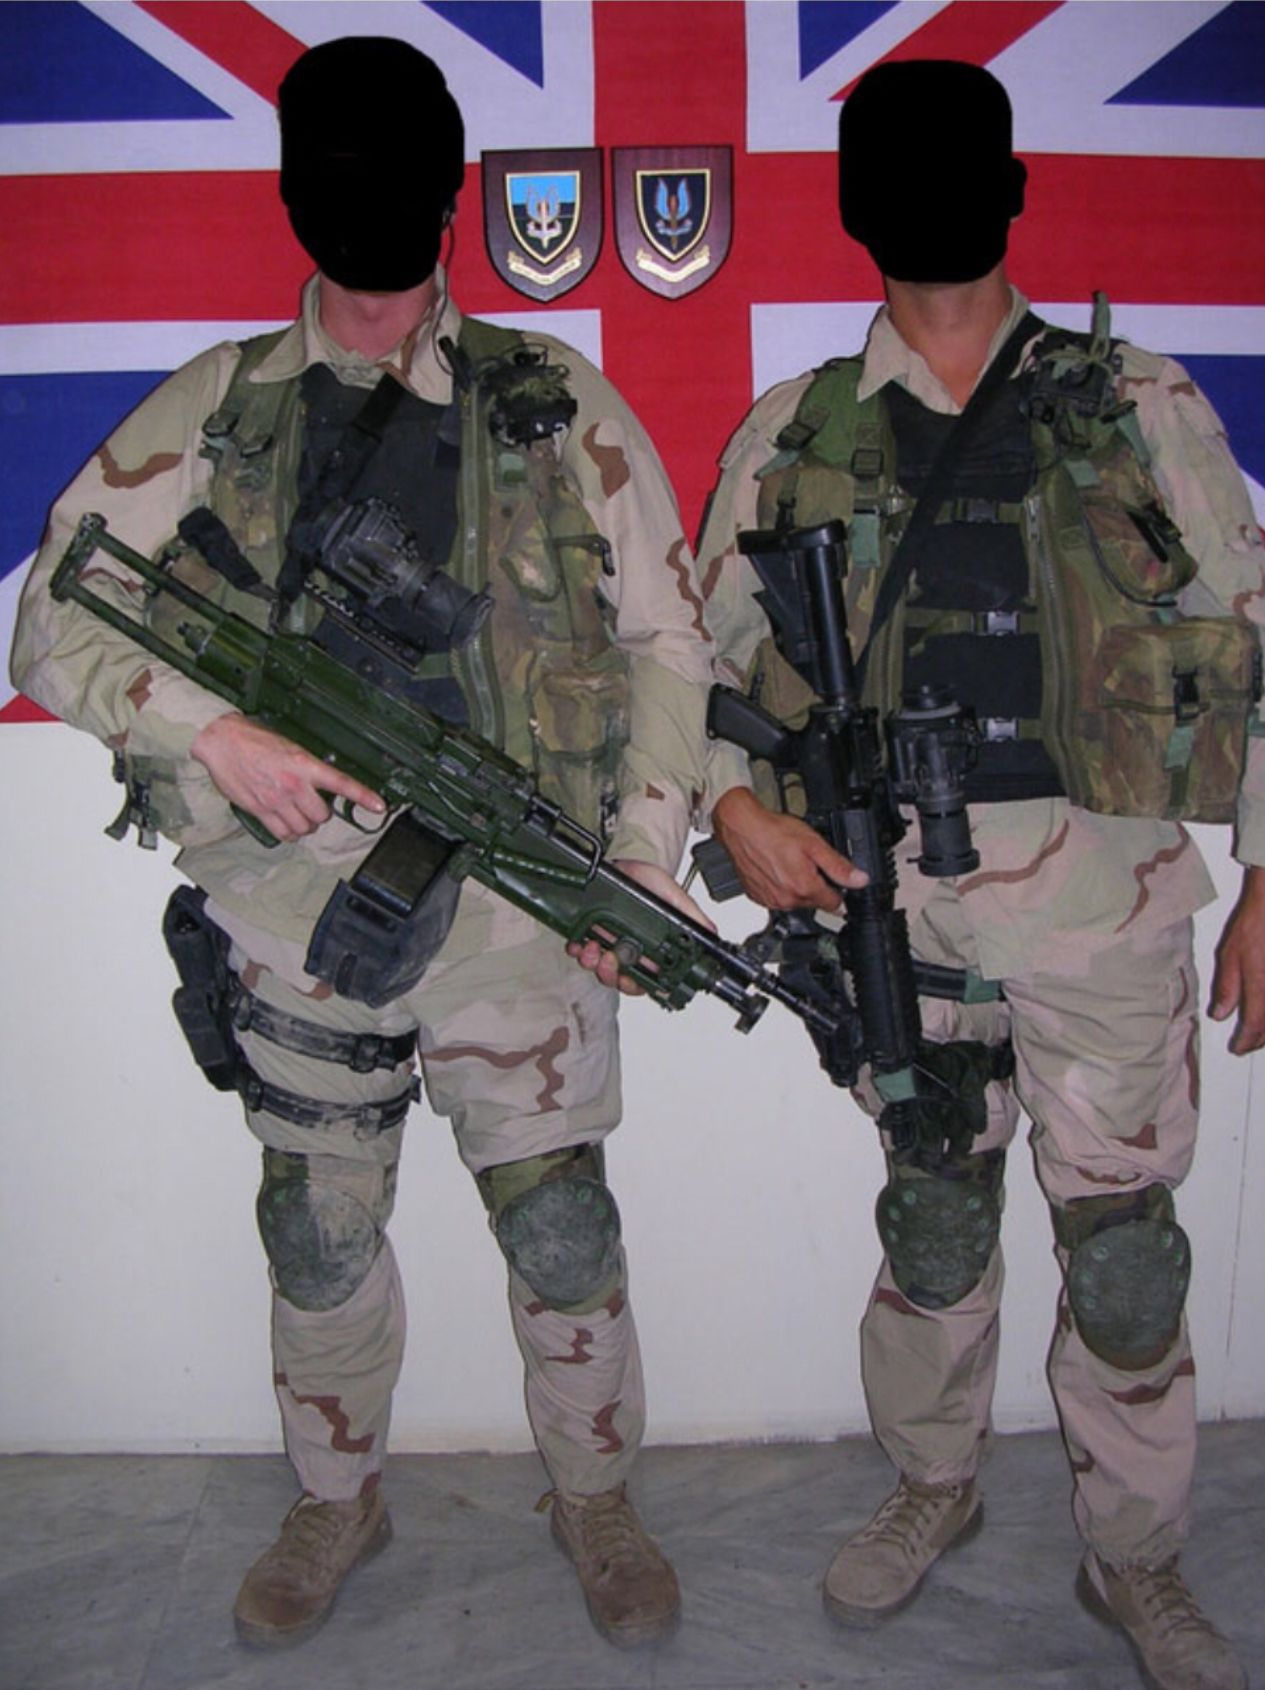 Pin by Tslmimep on UKSF SAS Sas special forces, Special